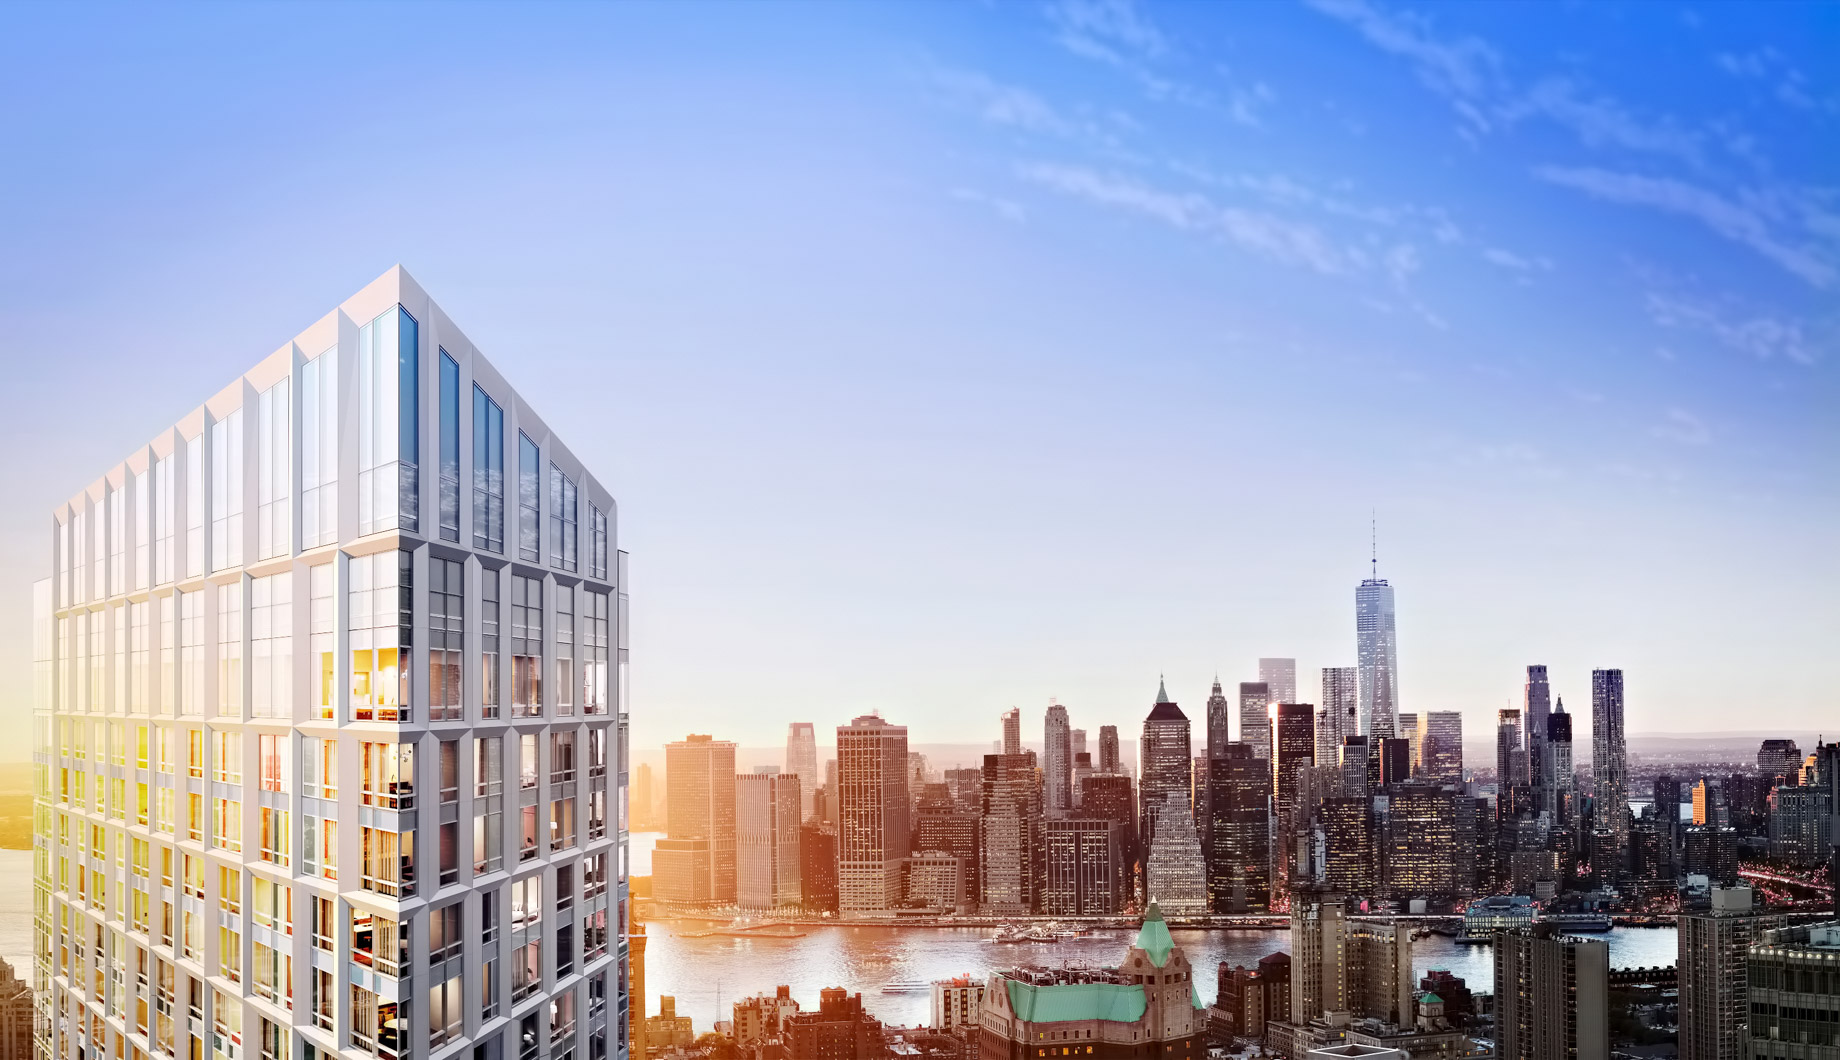 Brooklyn Point - New York City Luxury Market in 2018 - 5 Premier New Residential Developments